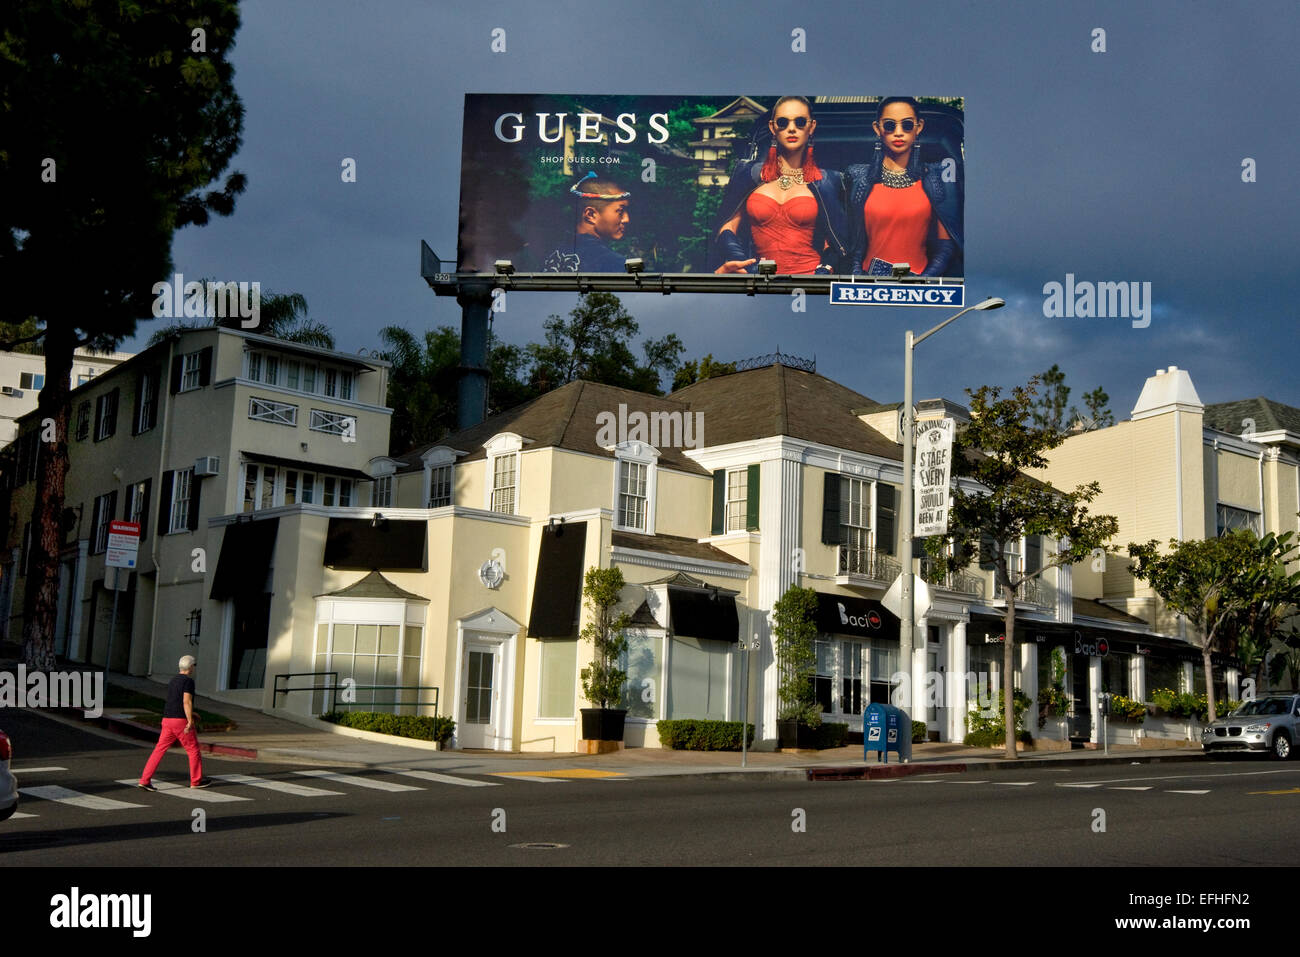 Guess billboard on the Sunset Strip - Stock Image